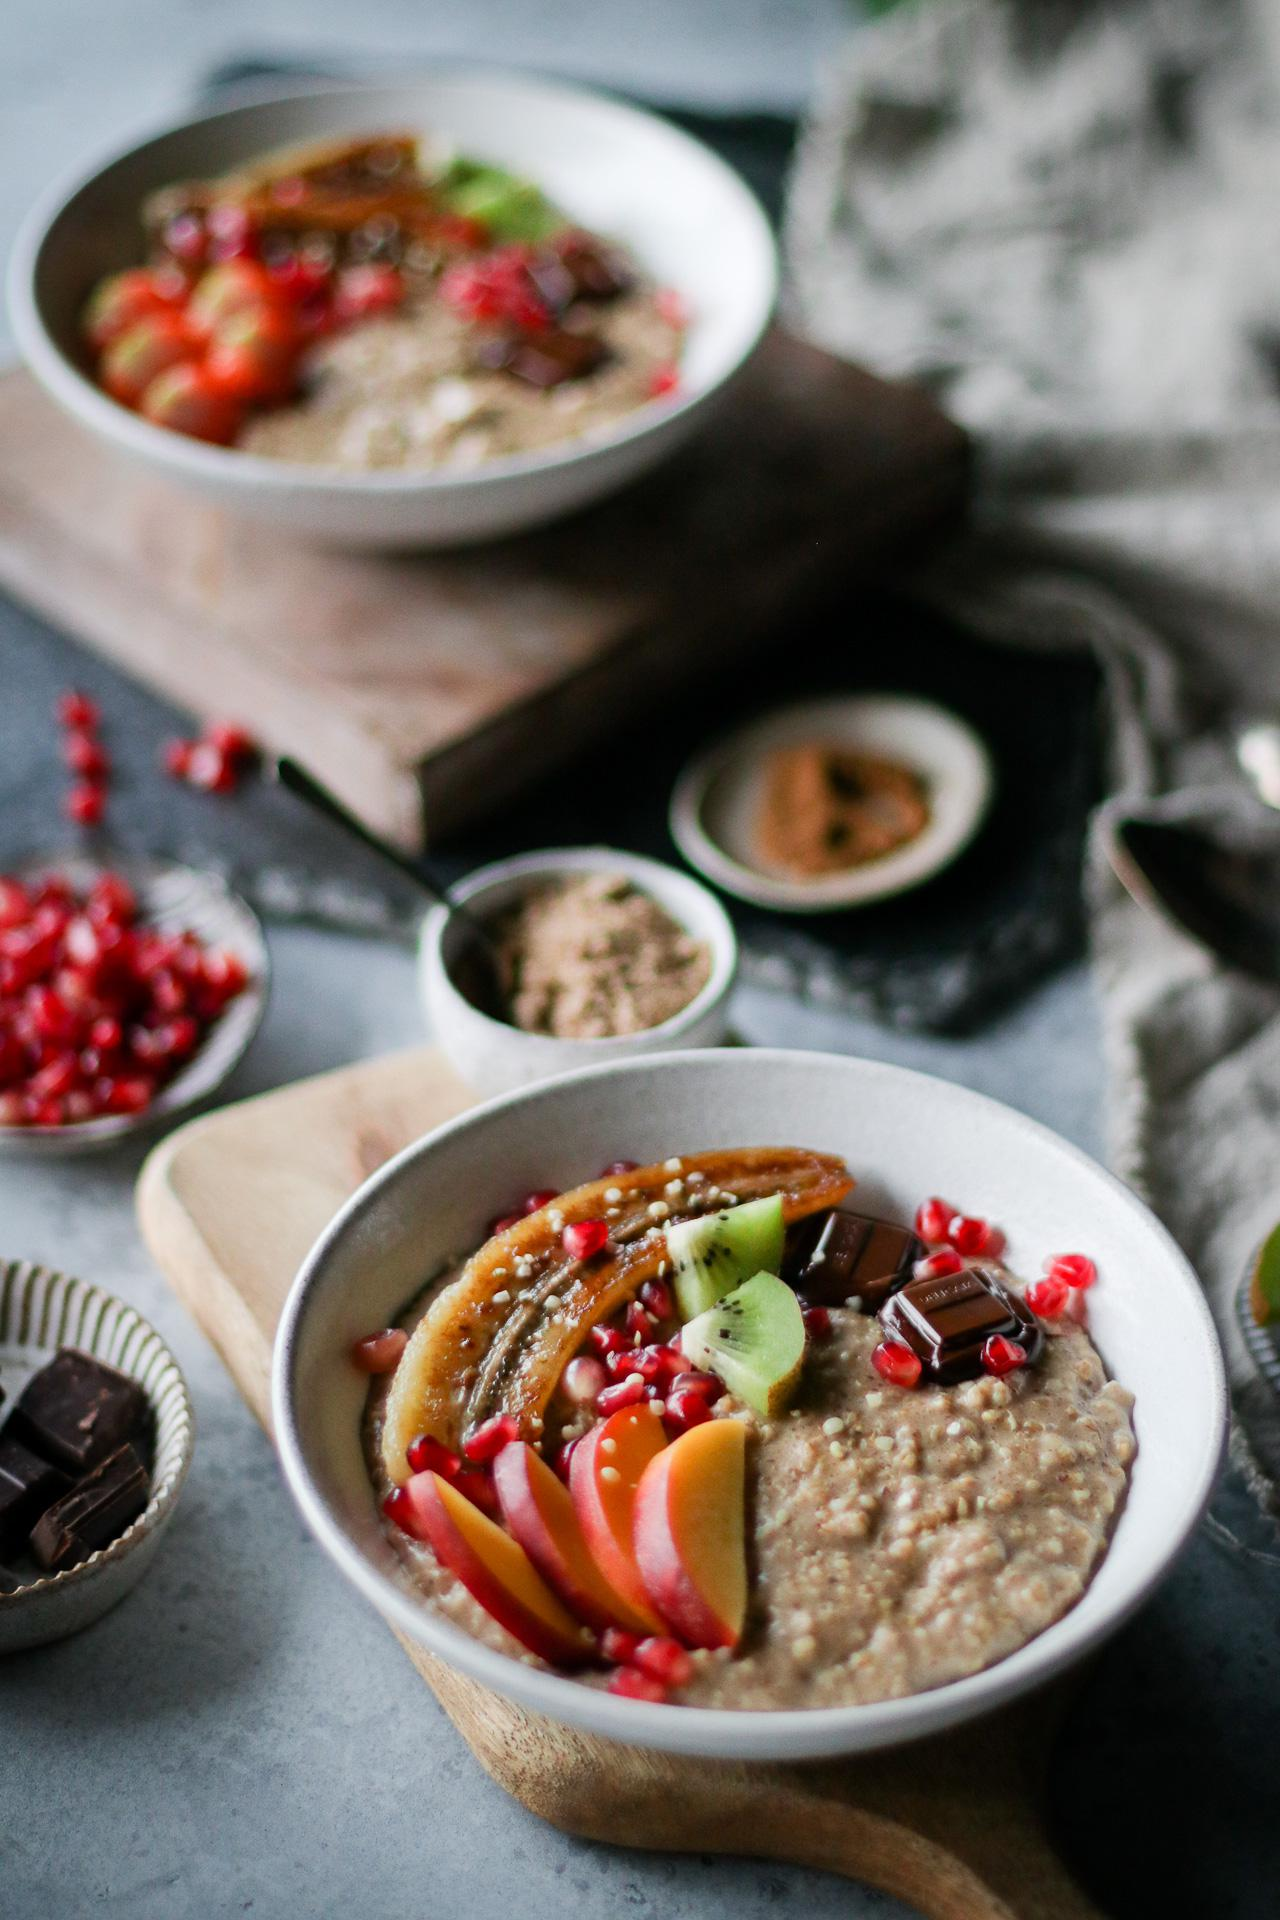 Main image of Classic Creamy Steel-Cut Oats